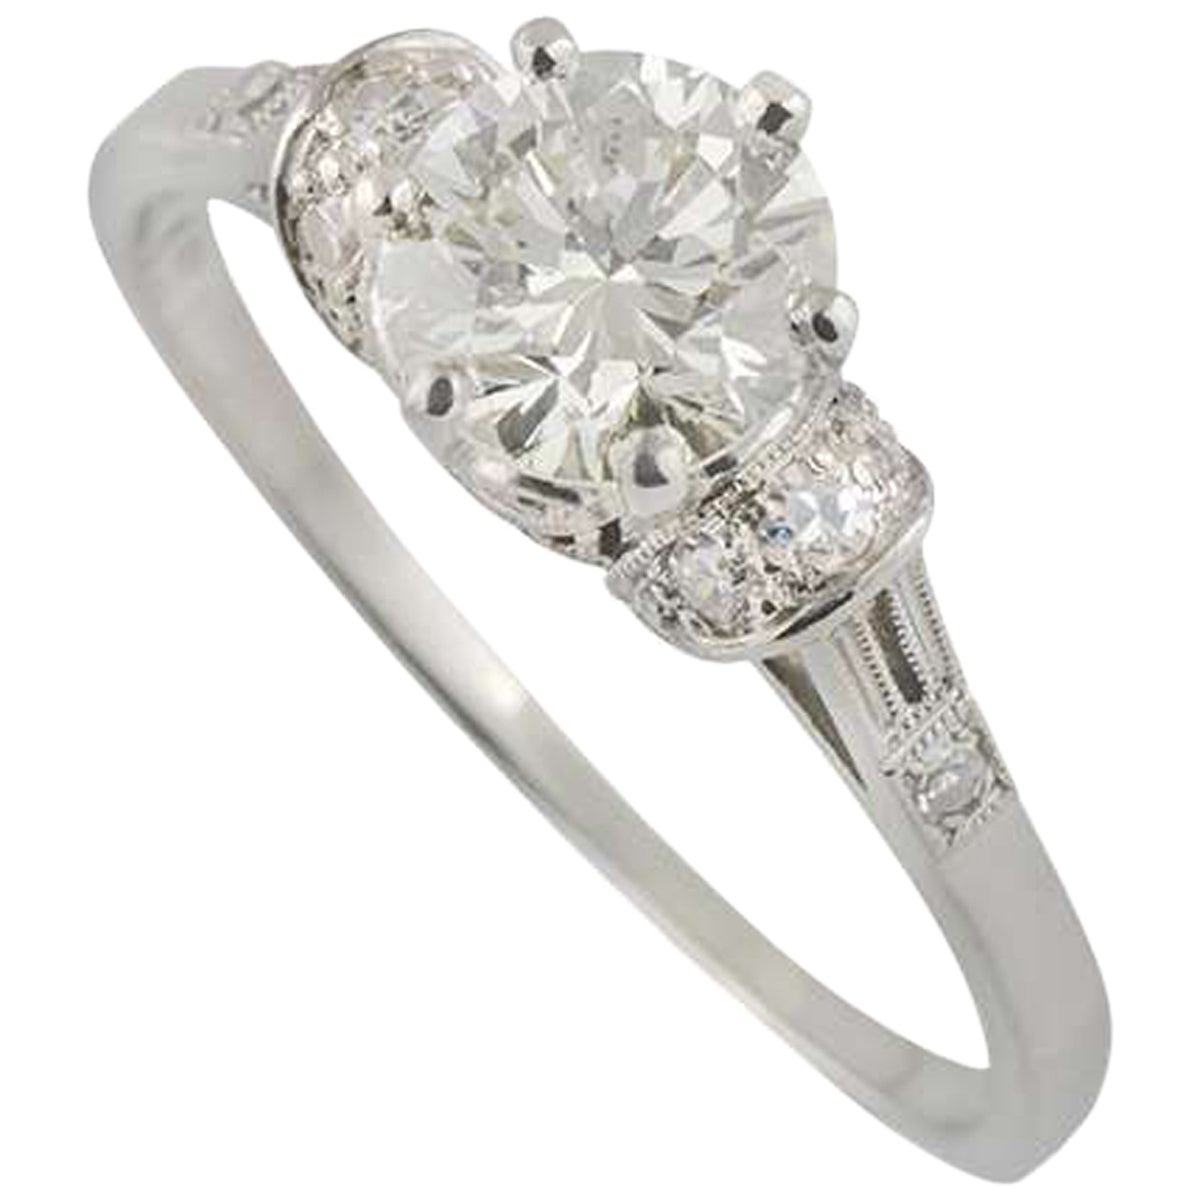 Certified Old Cut Diamond Platinum Engagement Ring 0.88 Carat